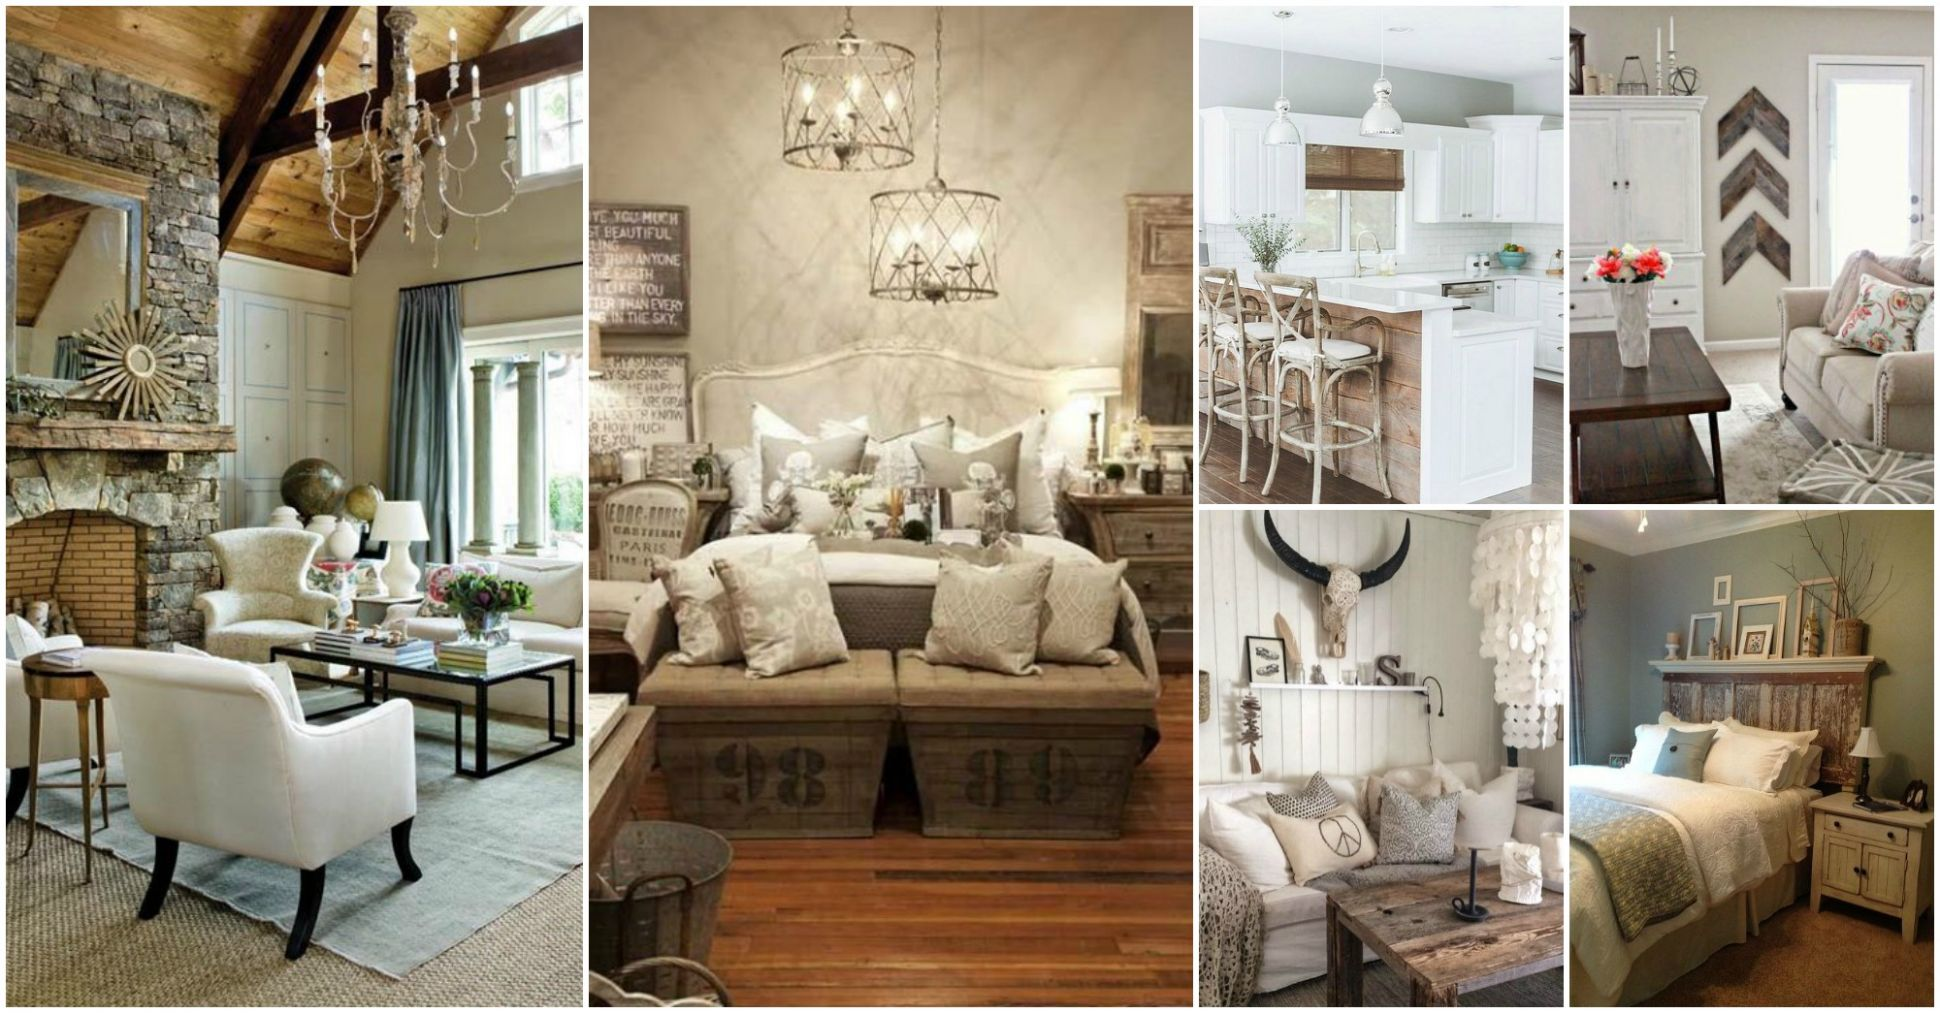 The Stylish Room Decoration Rustic Home Decor Decorating Ideas ..